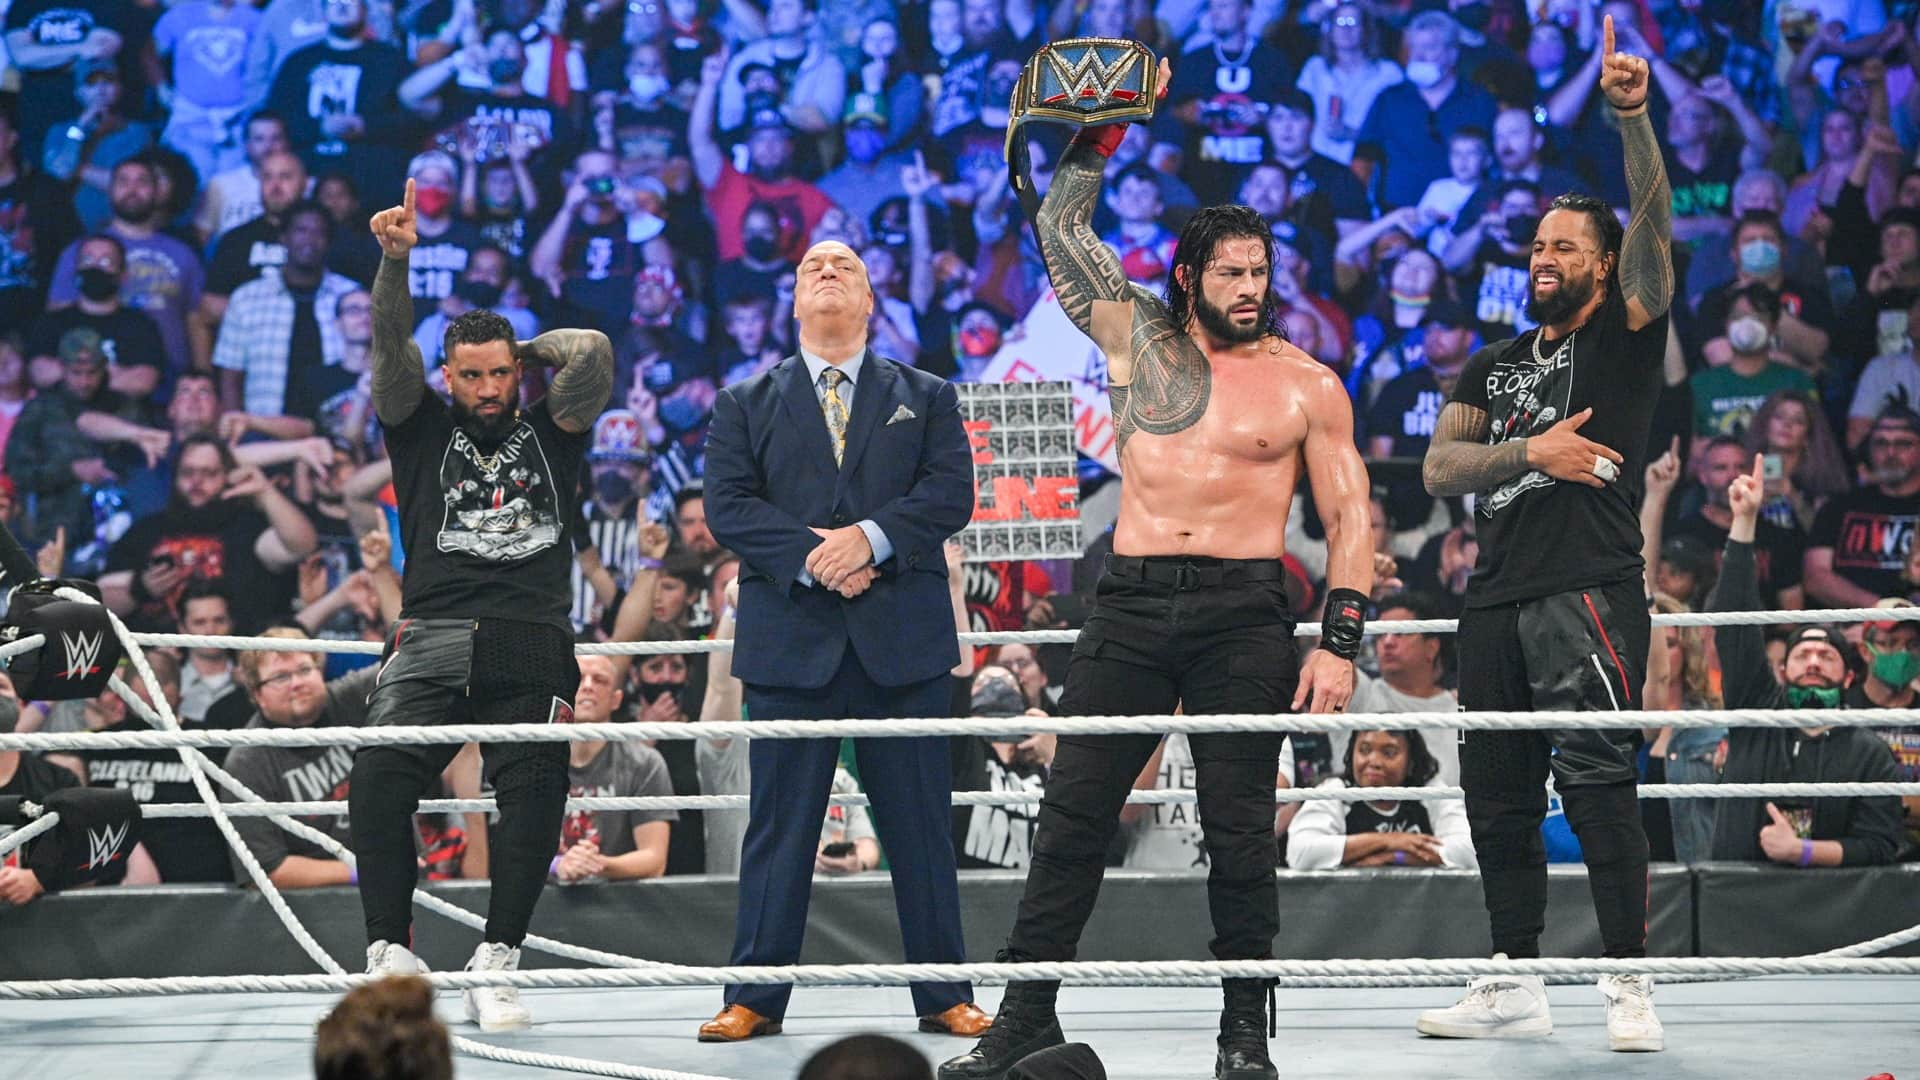 resultats wwe extreme rules 2021